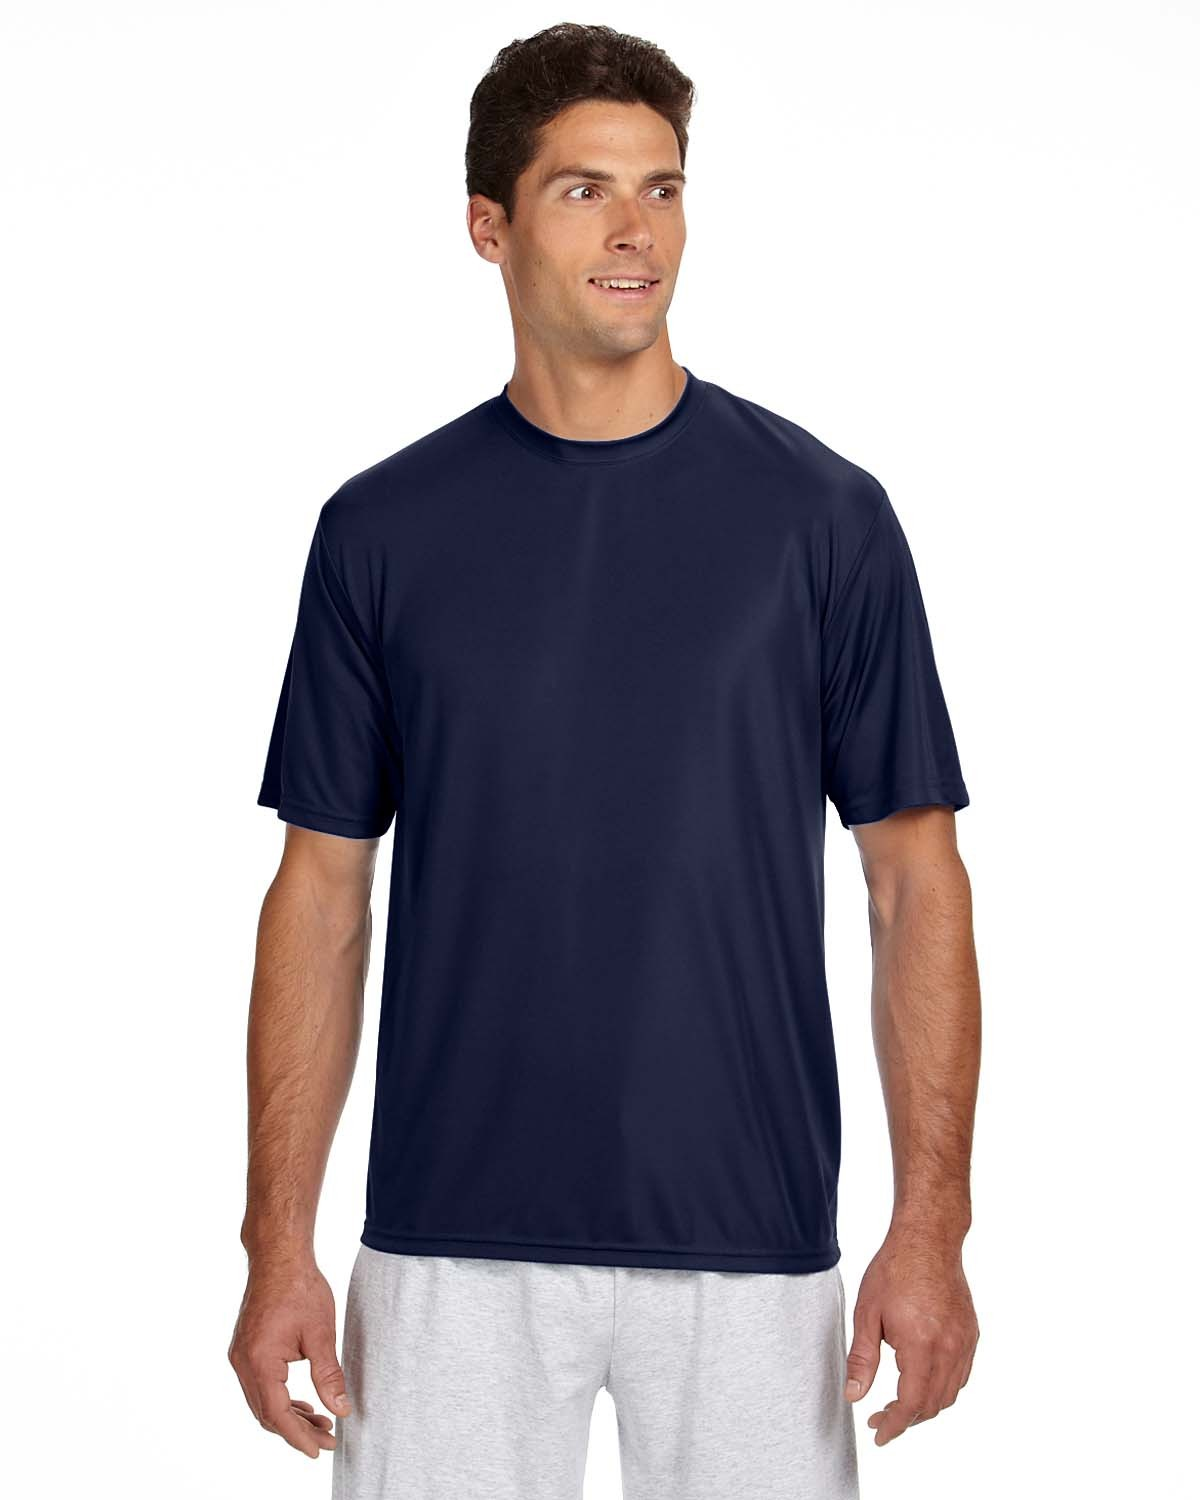 N3142 A4 Apparel NAVY